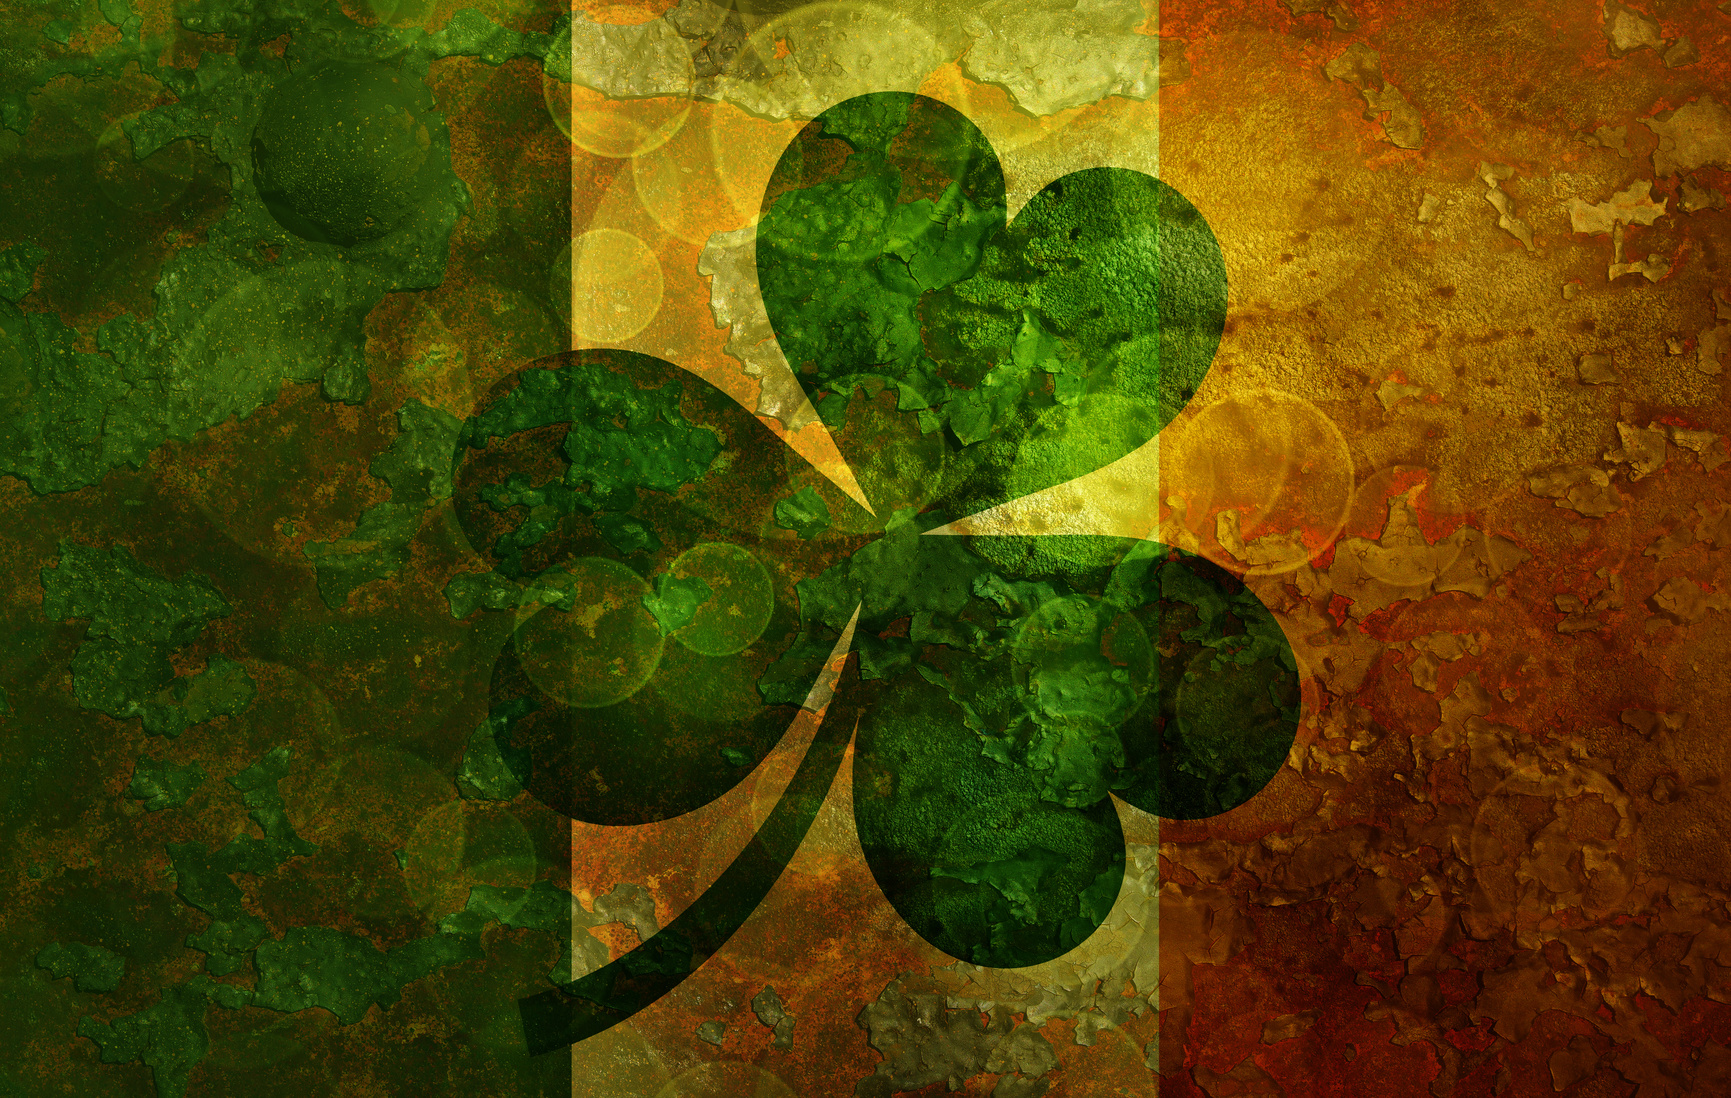 shamrock on Irish flag